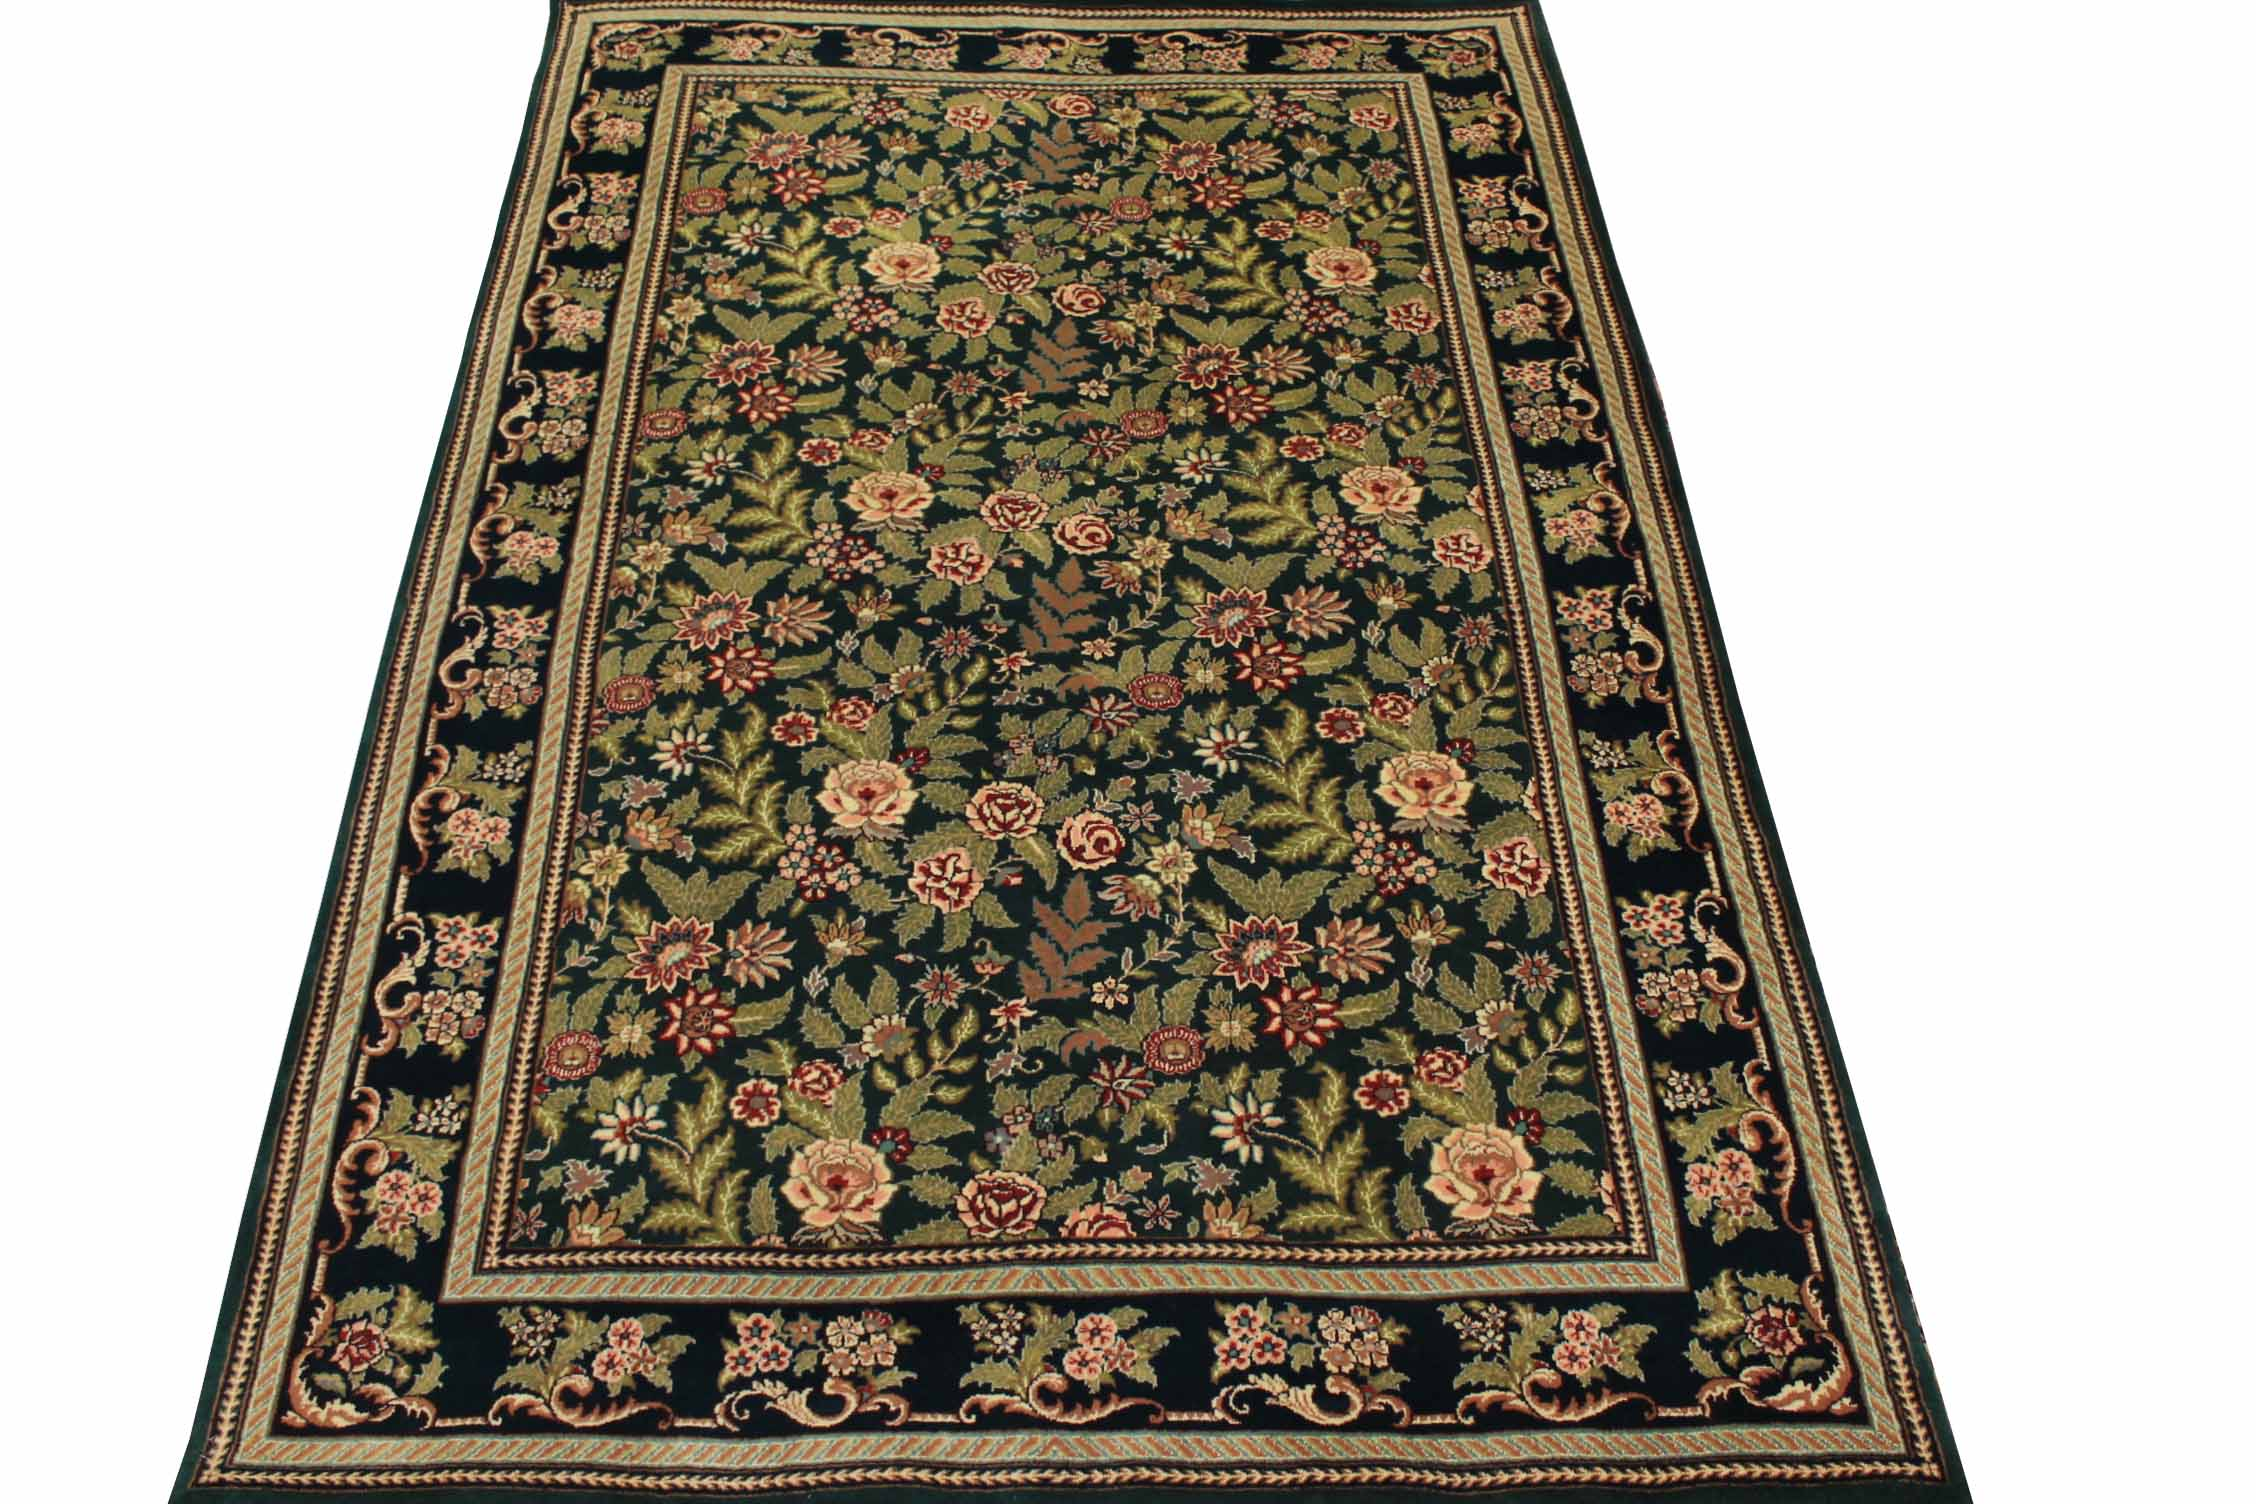 6x9 Traditional Hand Knotted Wool Area Rug - MR0734